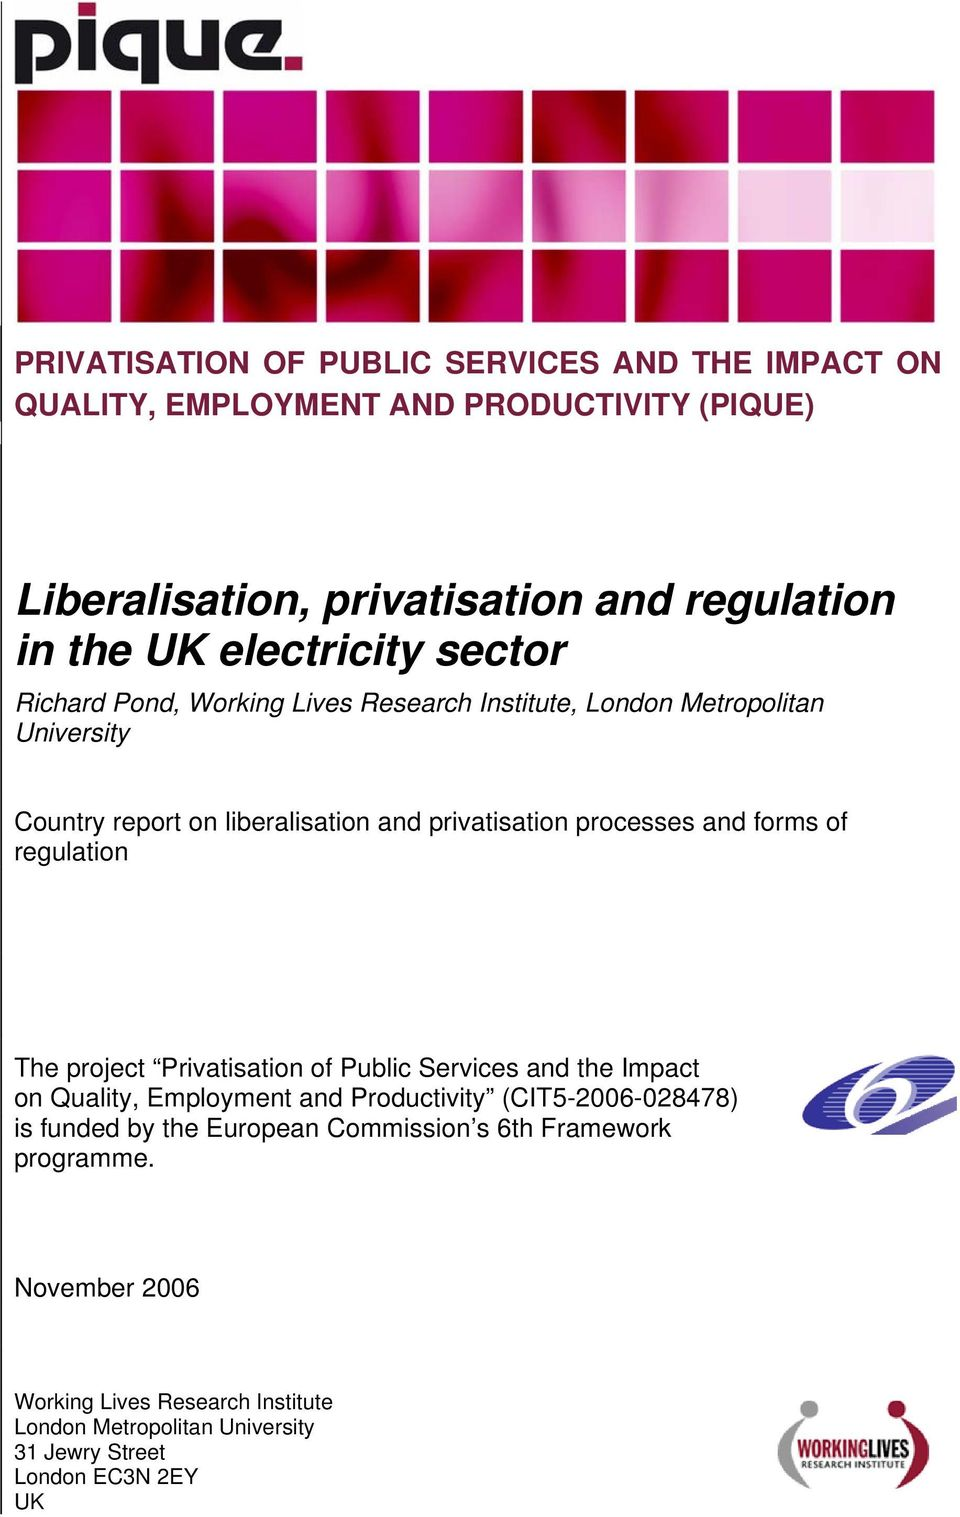 processes and forms of regulation The project Privatisation of Public Services and the Impact on Quality, Employment and Productivity (CIT5-2006-028478) is